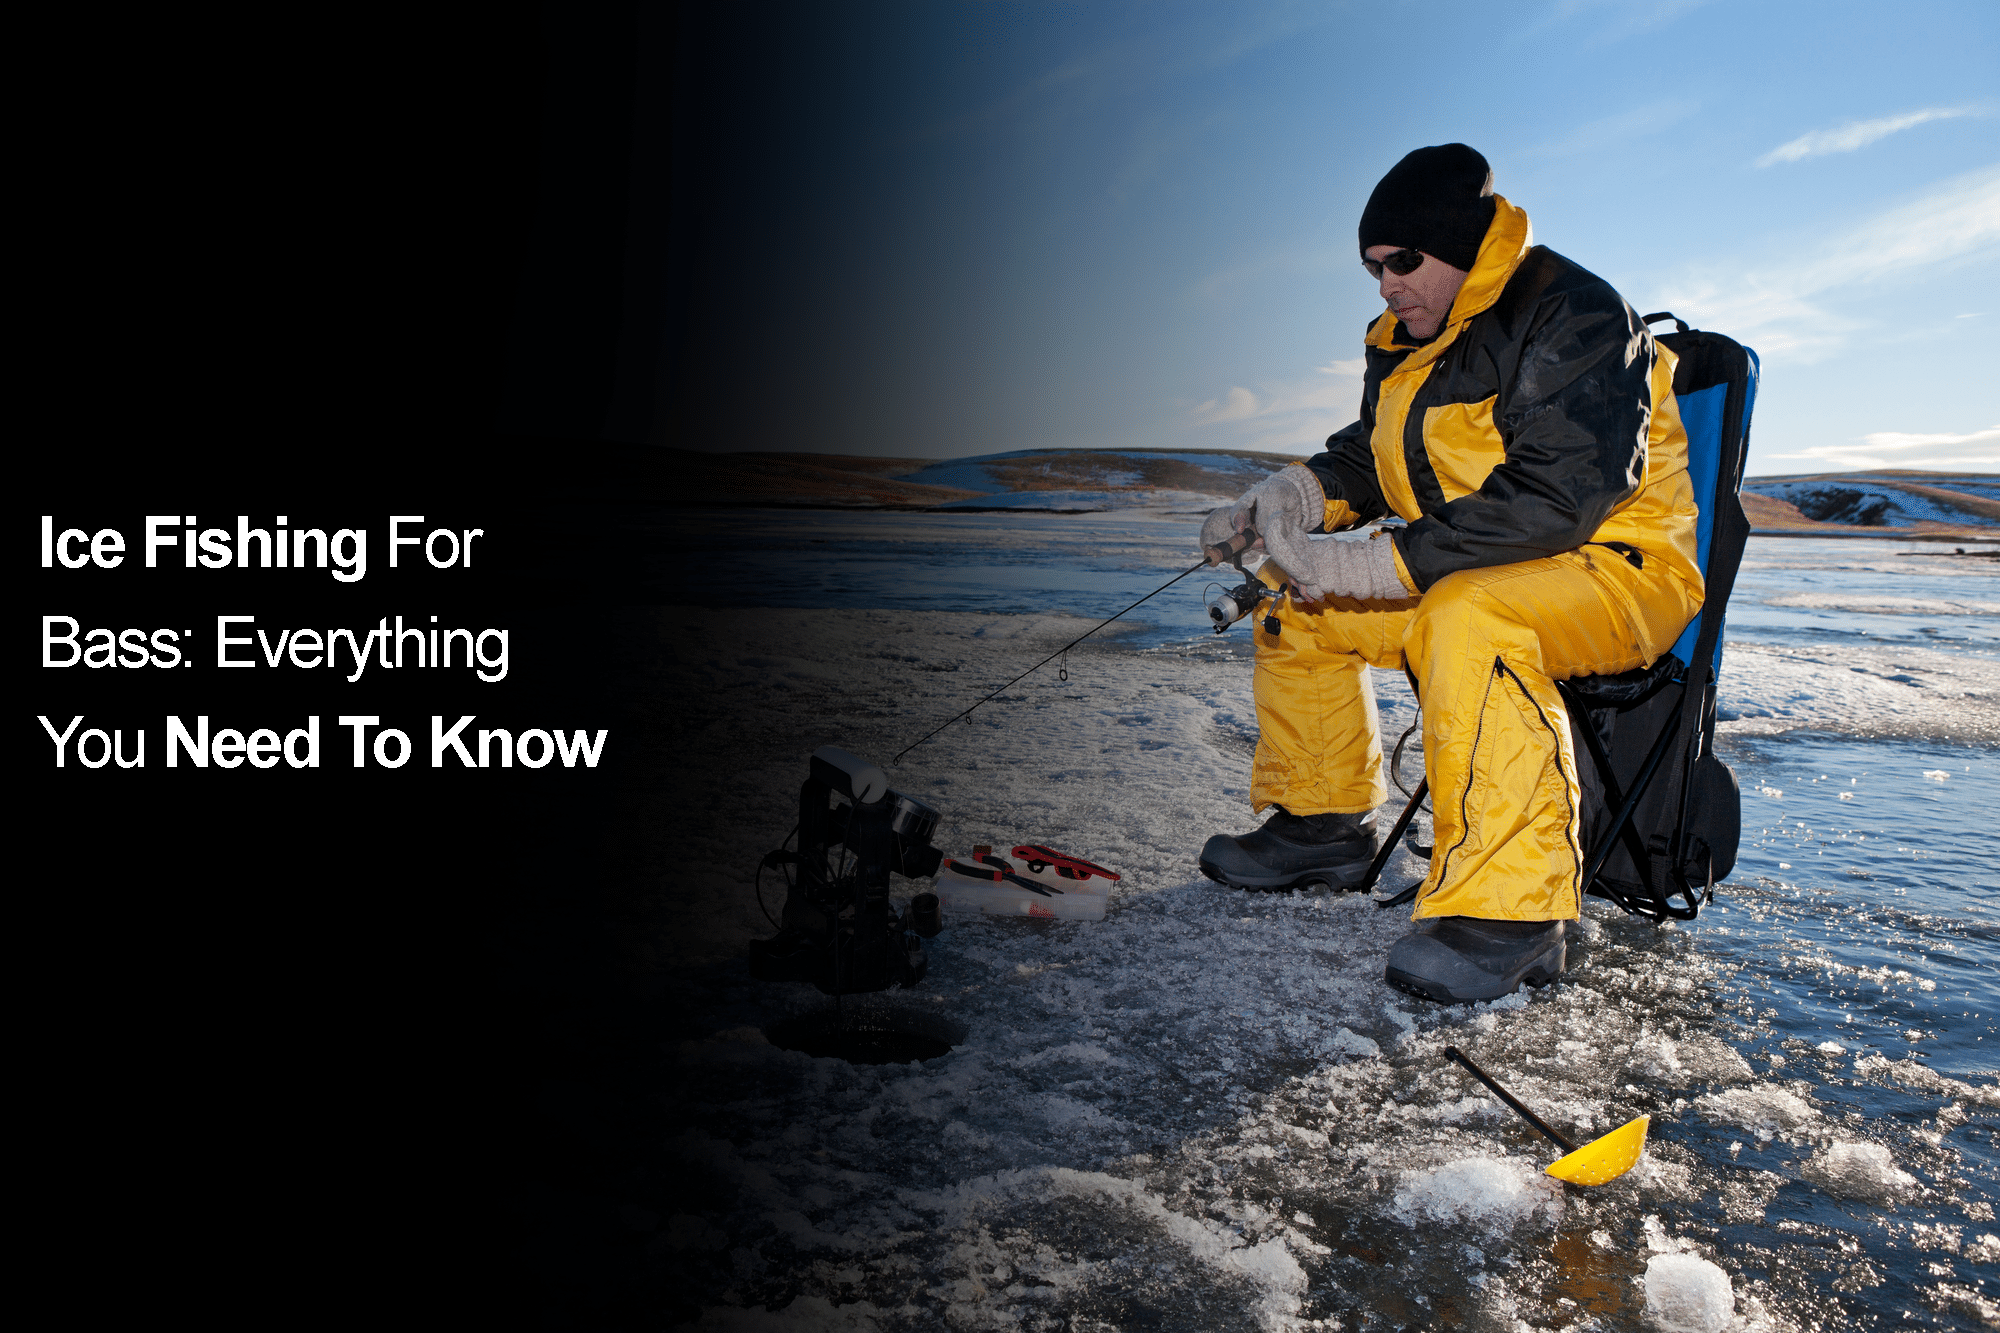 Ice fishing for bass